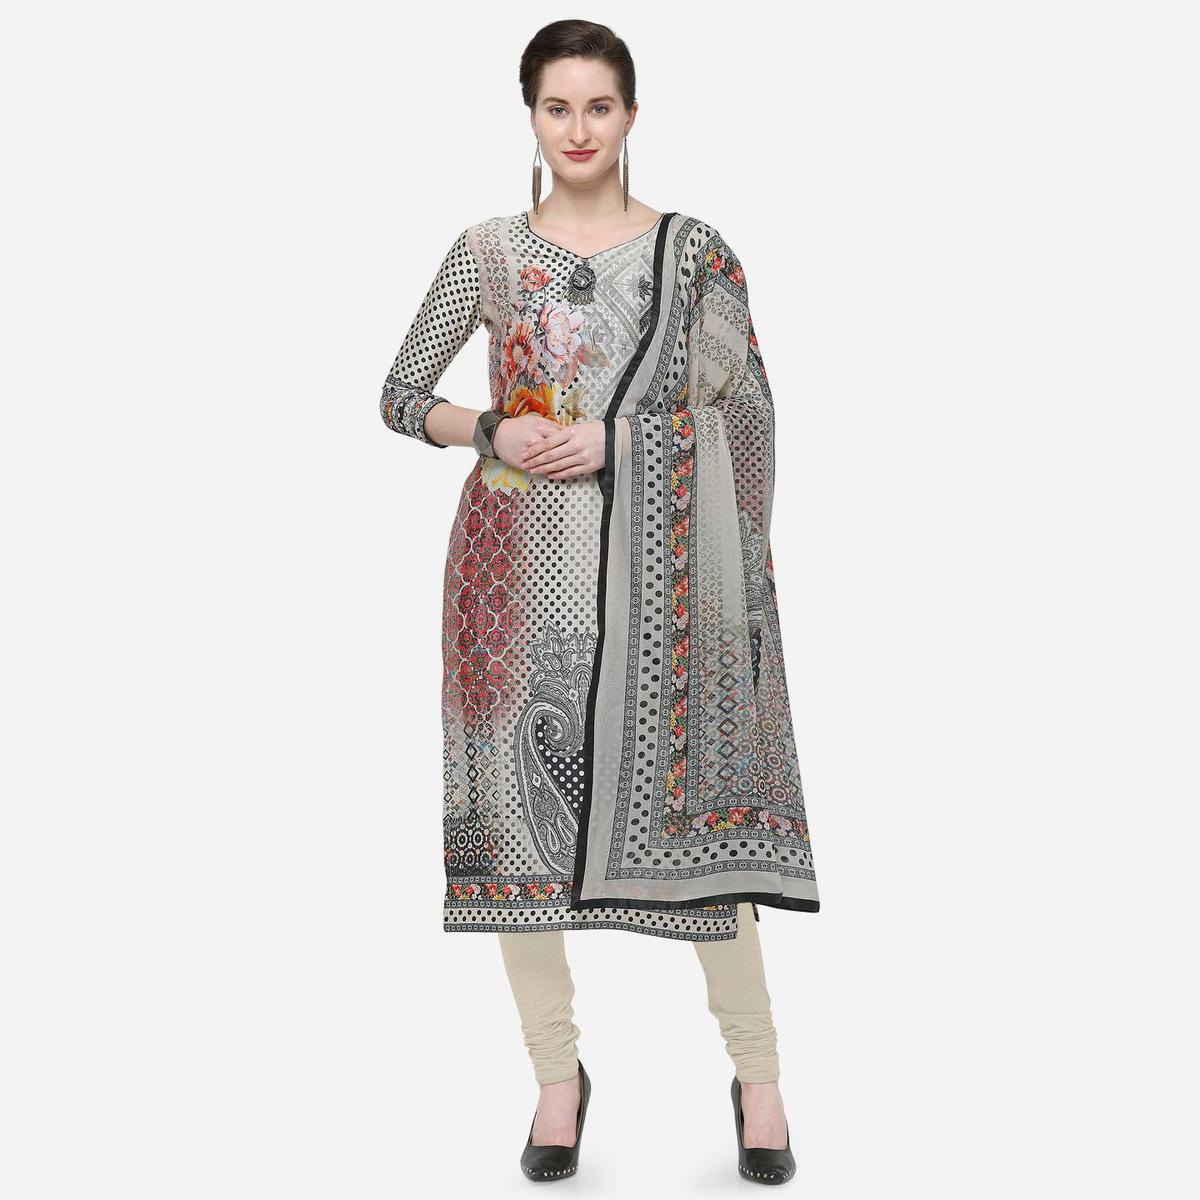 Stylee Lifestyle - Beige Colored Party Wear Printed Satin Dress Material